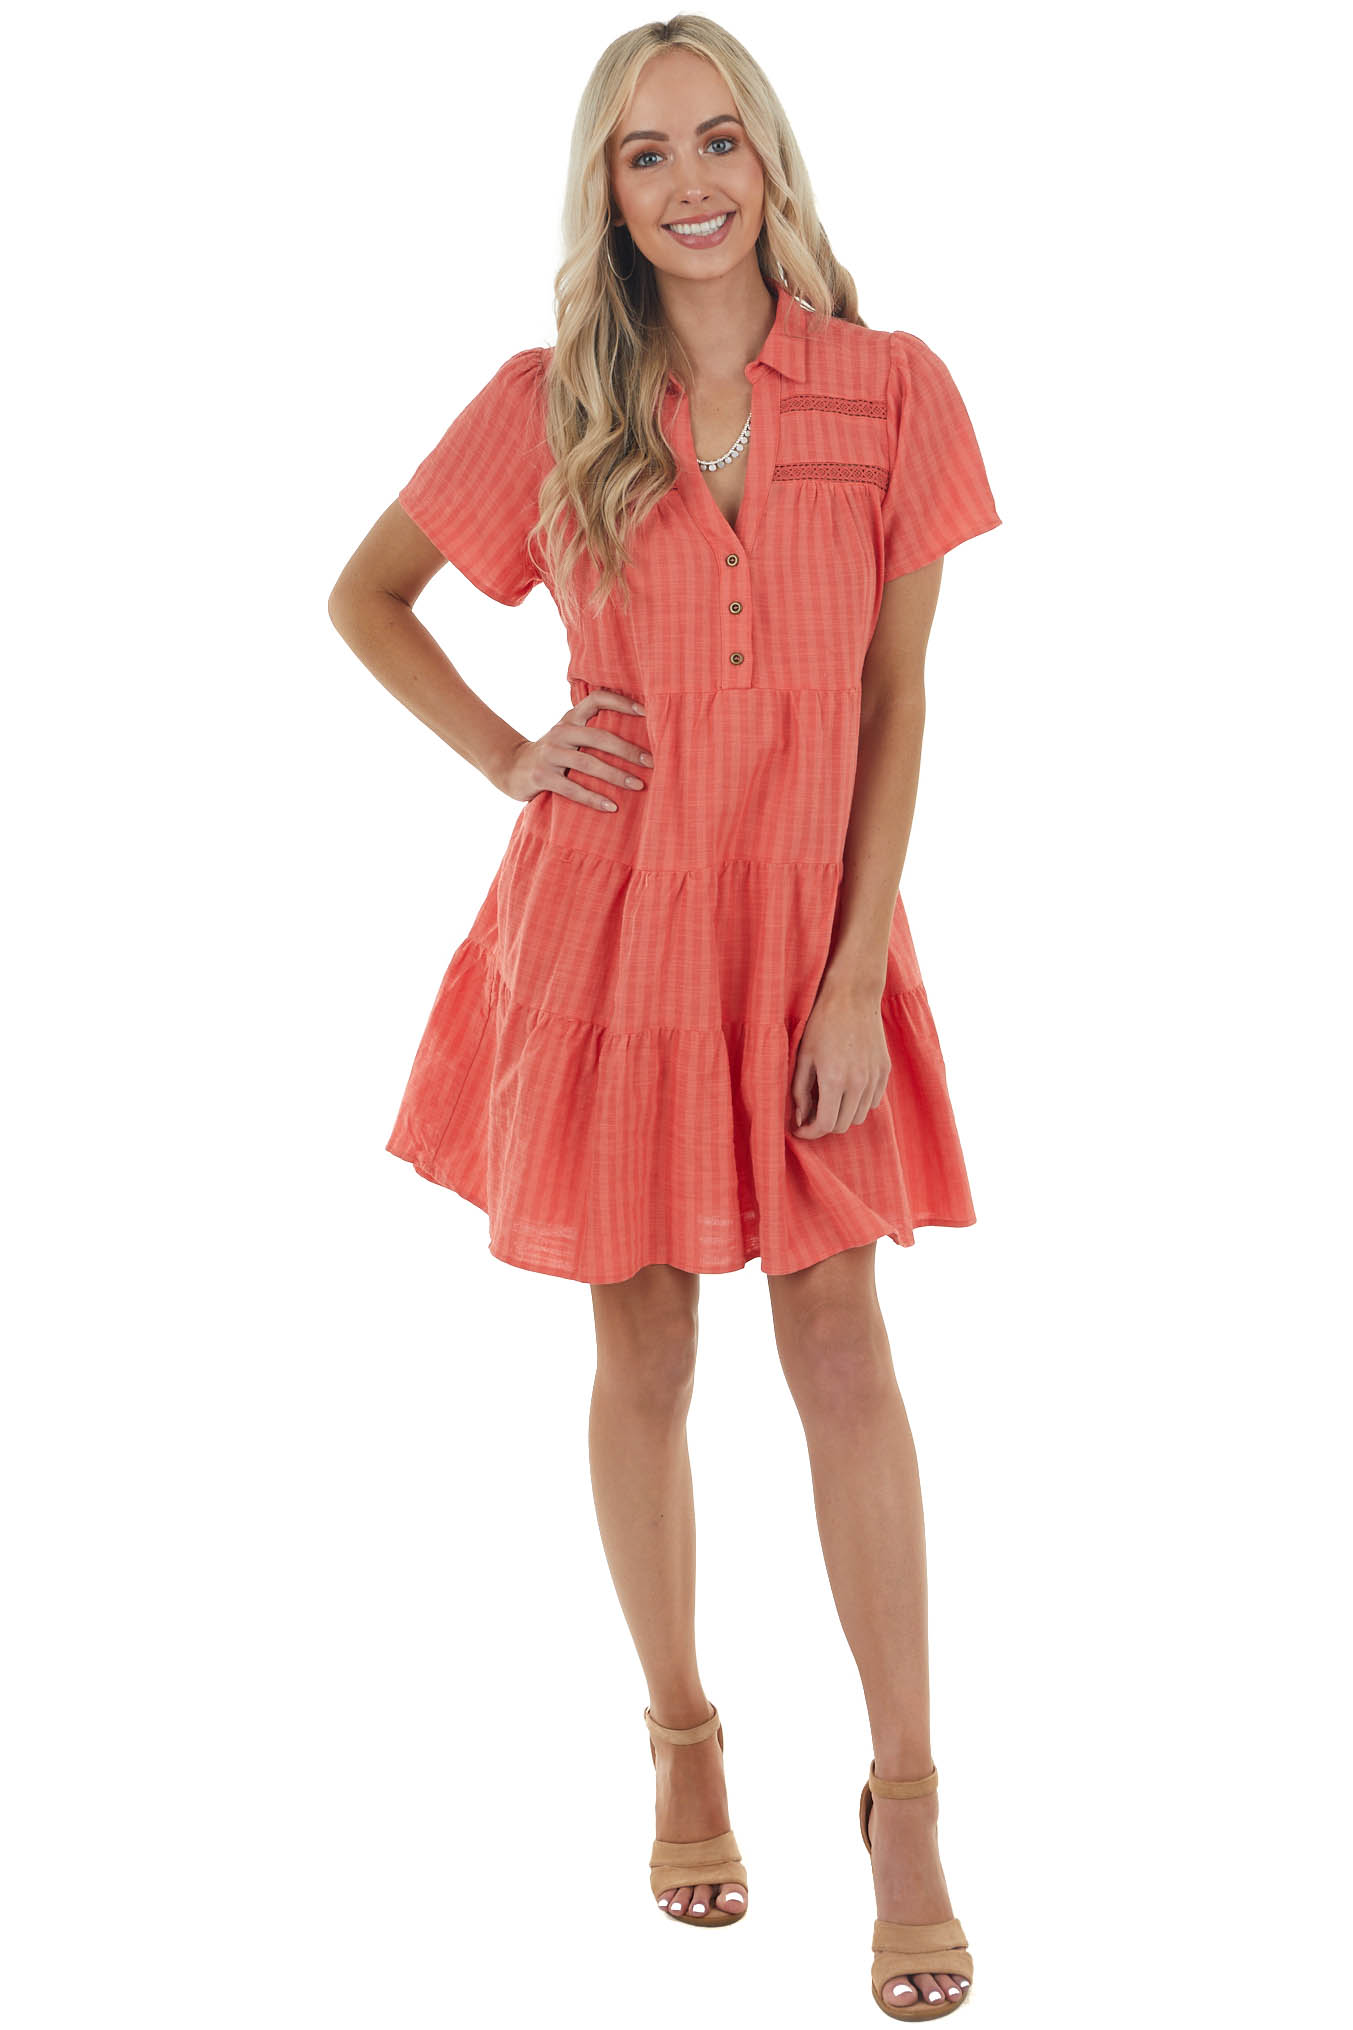 Fire Orange Two Toned Collared Drop Waist Tiered Short Dress